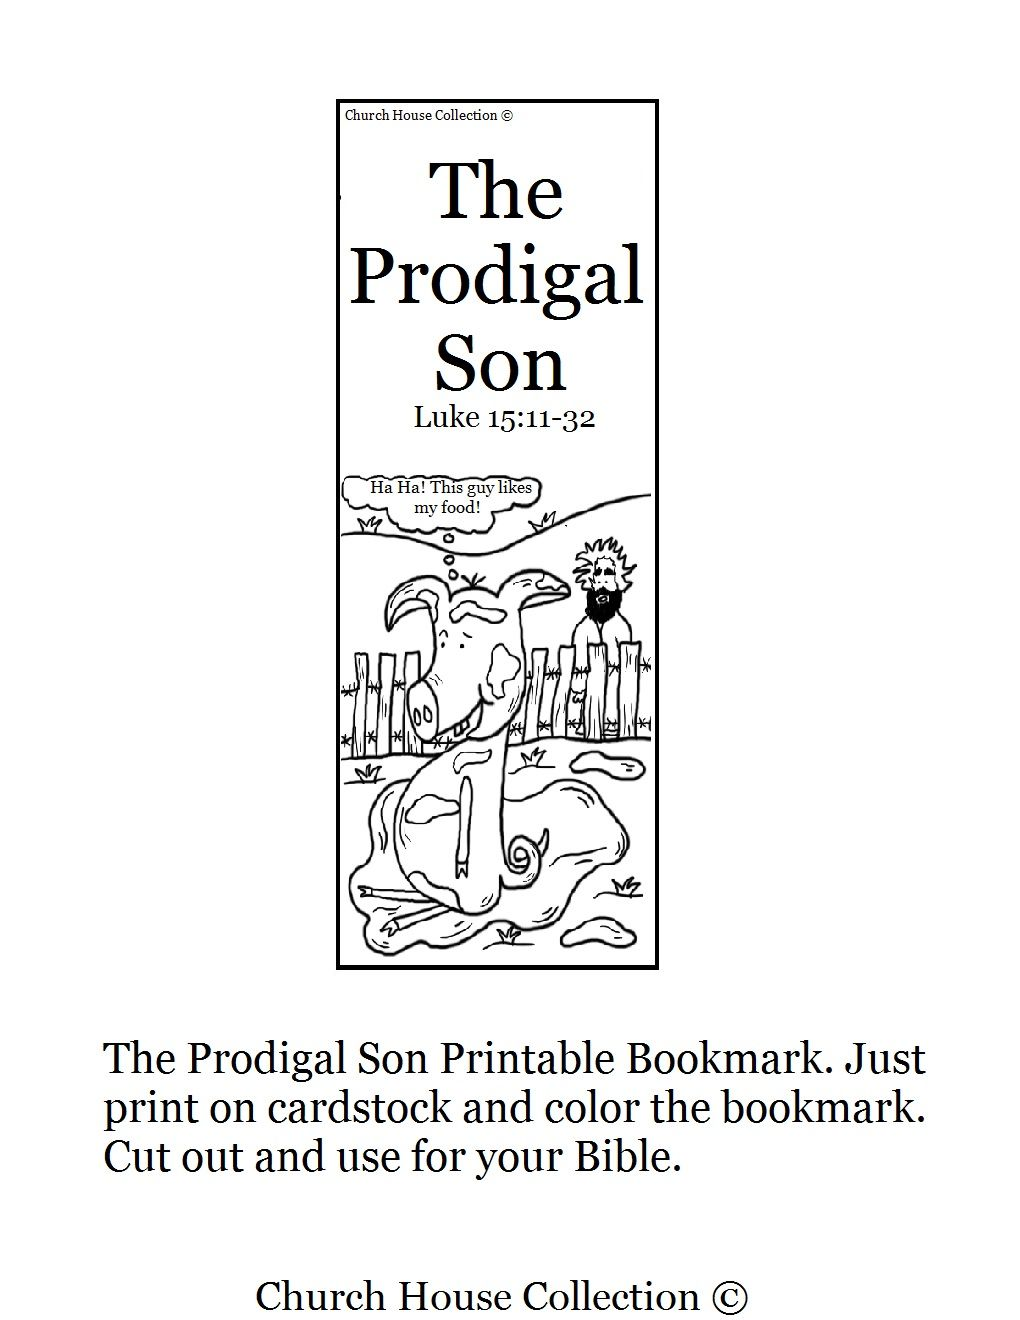 the prodigal son bookmark printable maybe just for fun